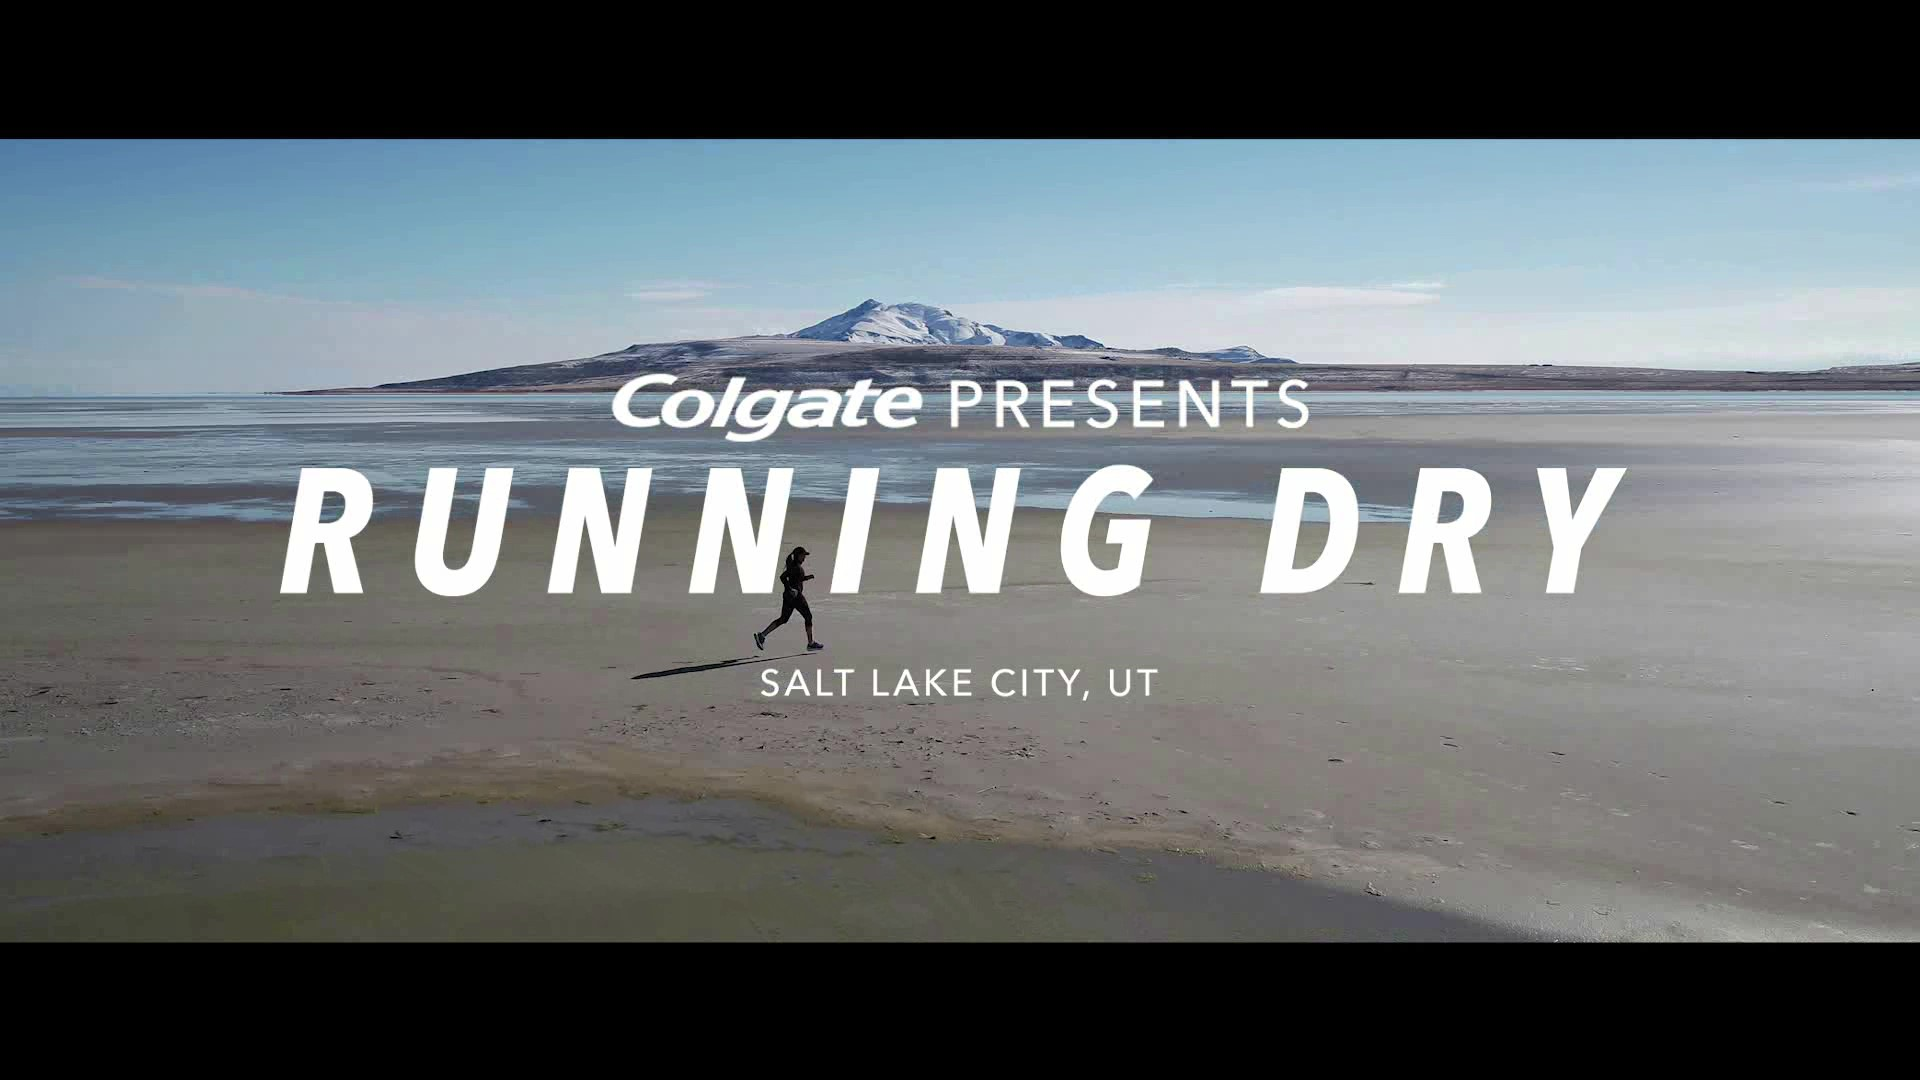 Water advocate and ultra-runner Mina Guli talks water scarcity at the Great Salt Lake as part of her #RunningDry effort, sponsored by Colgate